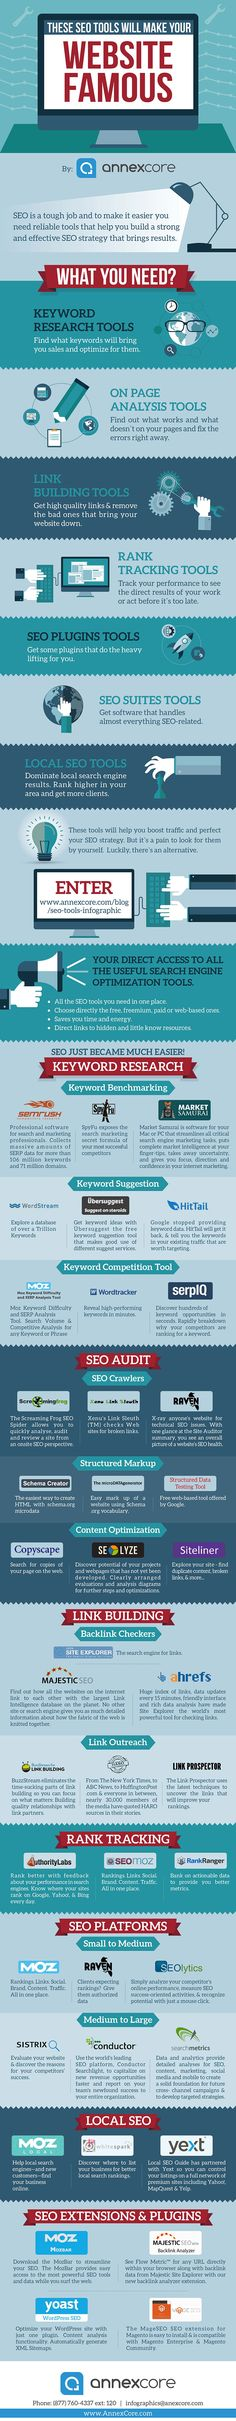 Infographic: These Tools Will Make Your Website Famous (Haven't tried these out yet.) #SEO # www.seobats.com